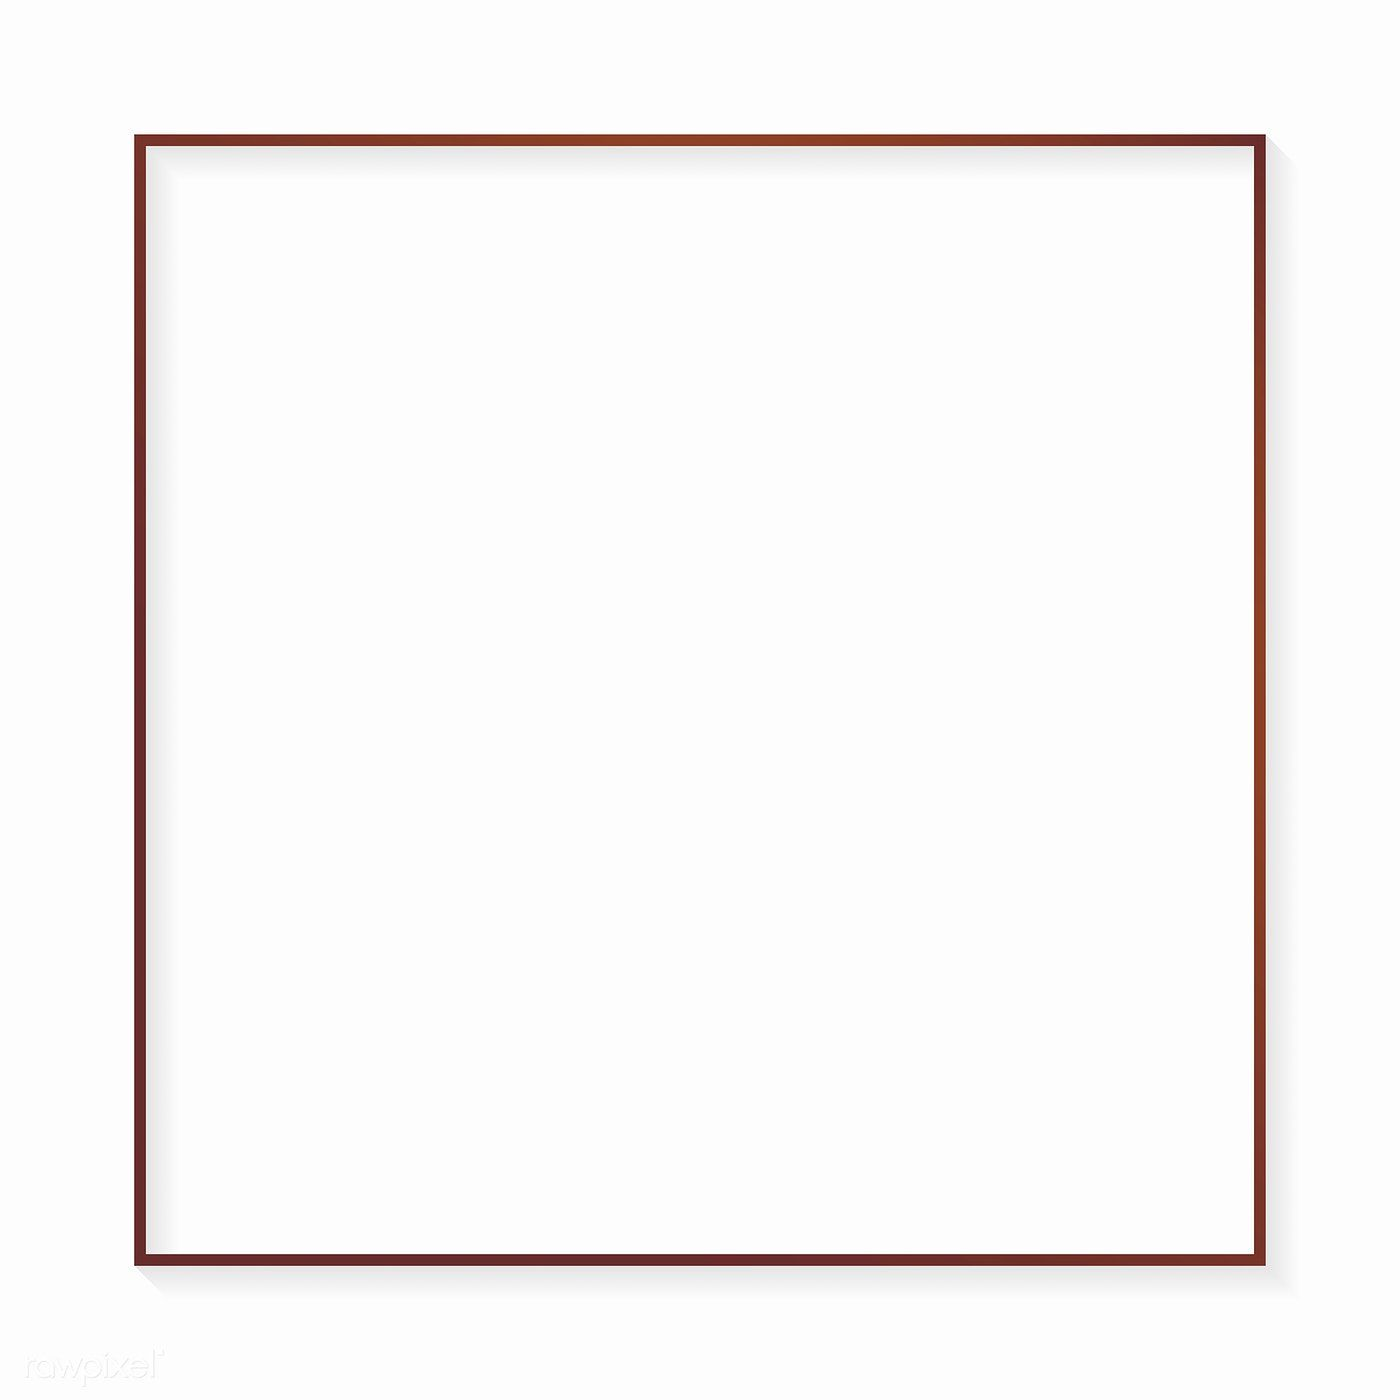 Square Bronze Frame On White Background Vector Free Image By Rawpixel Com Sasi Vector Free White Background Graphic Design Background Templates